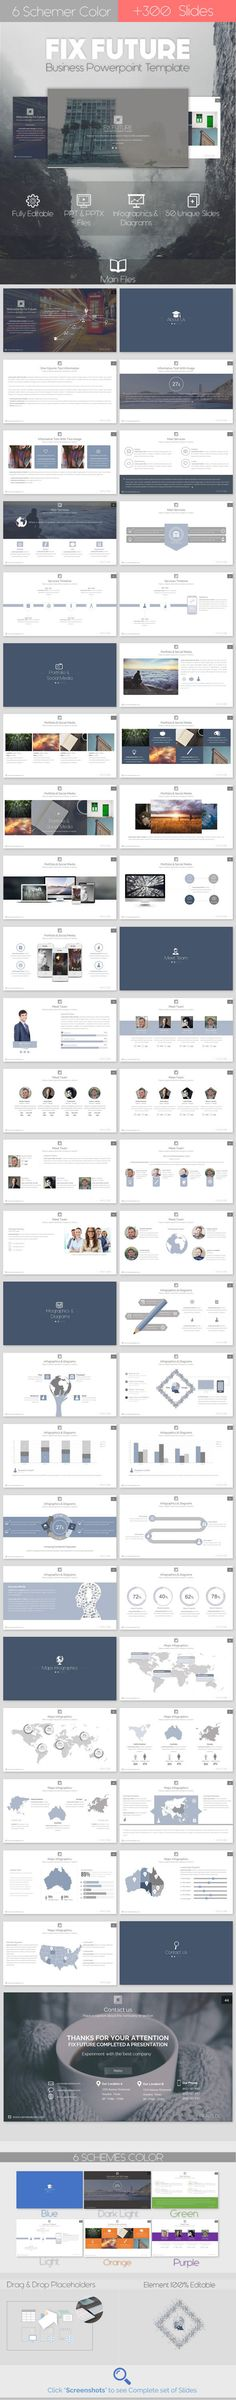 Basic Powerpoint Template  Business Powerpoint Templates